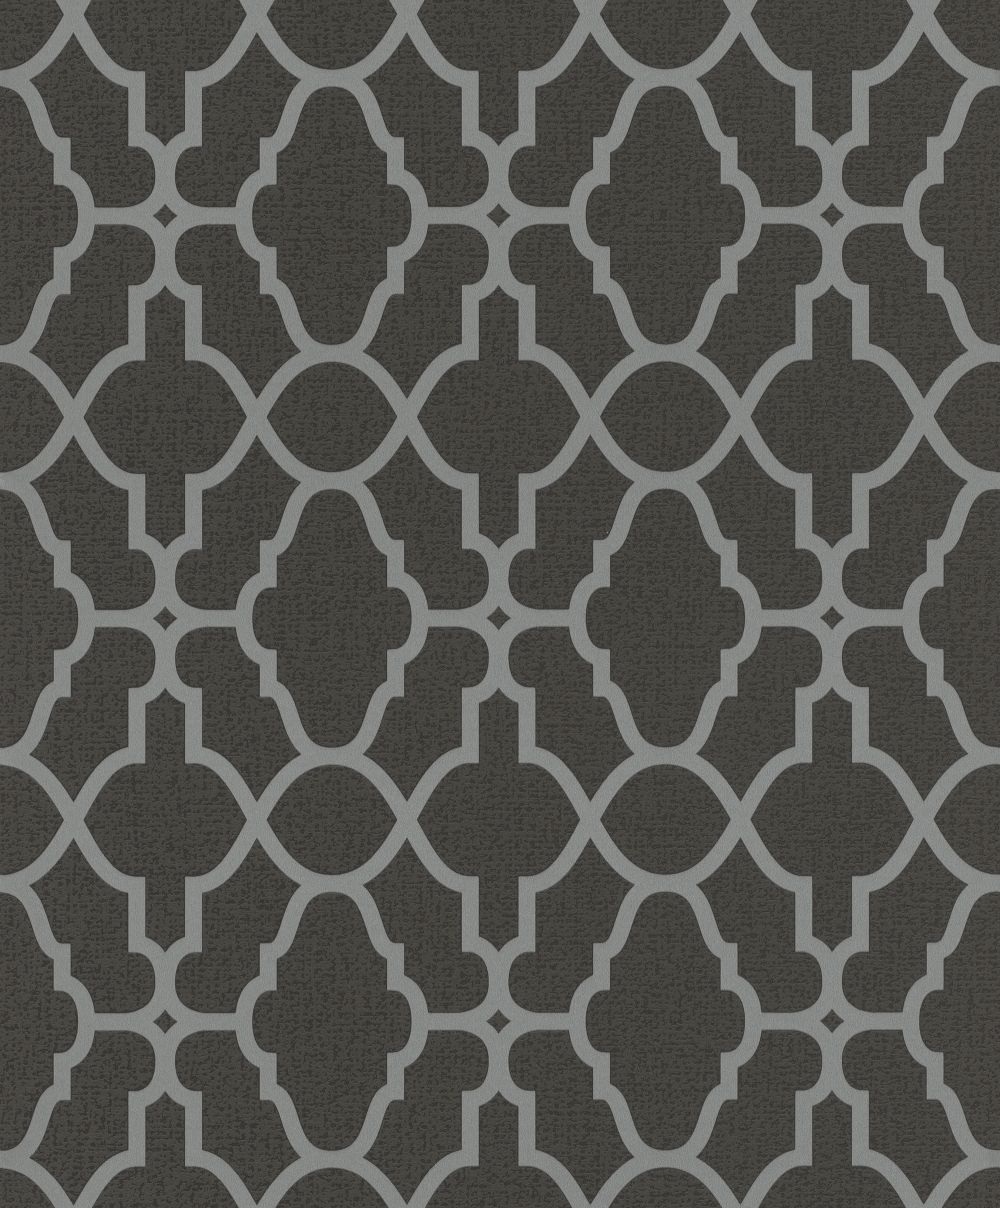 Albany Casablanca Charcoal Wallpaper - Product code: 309348